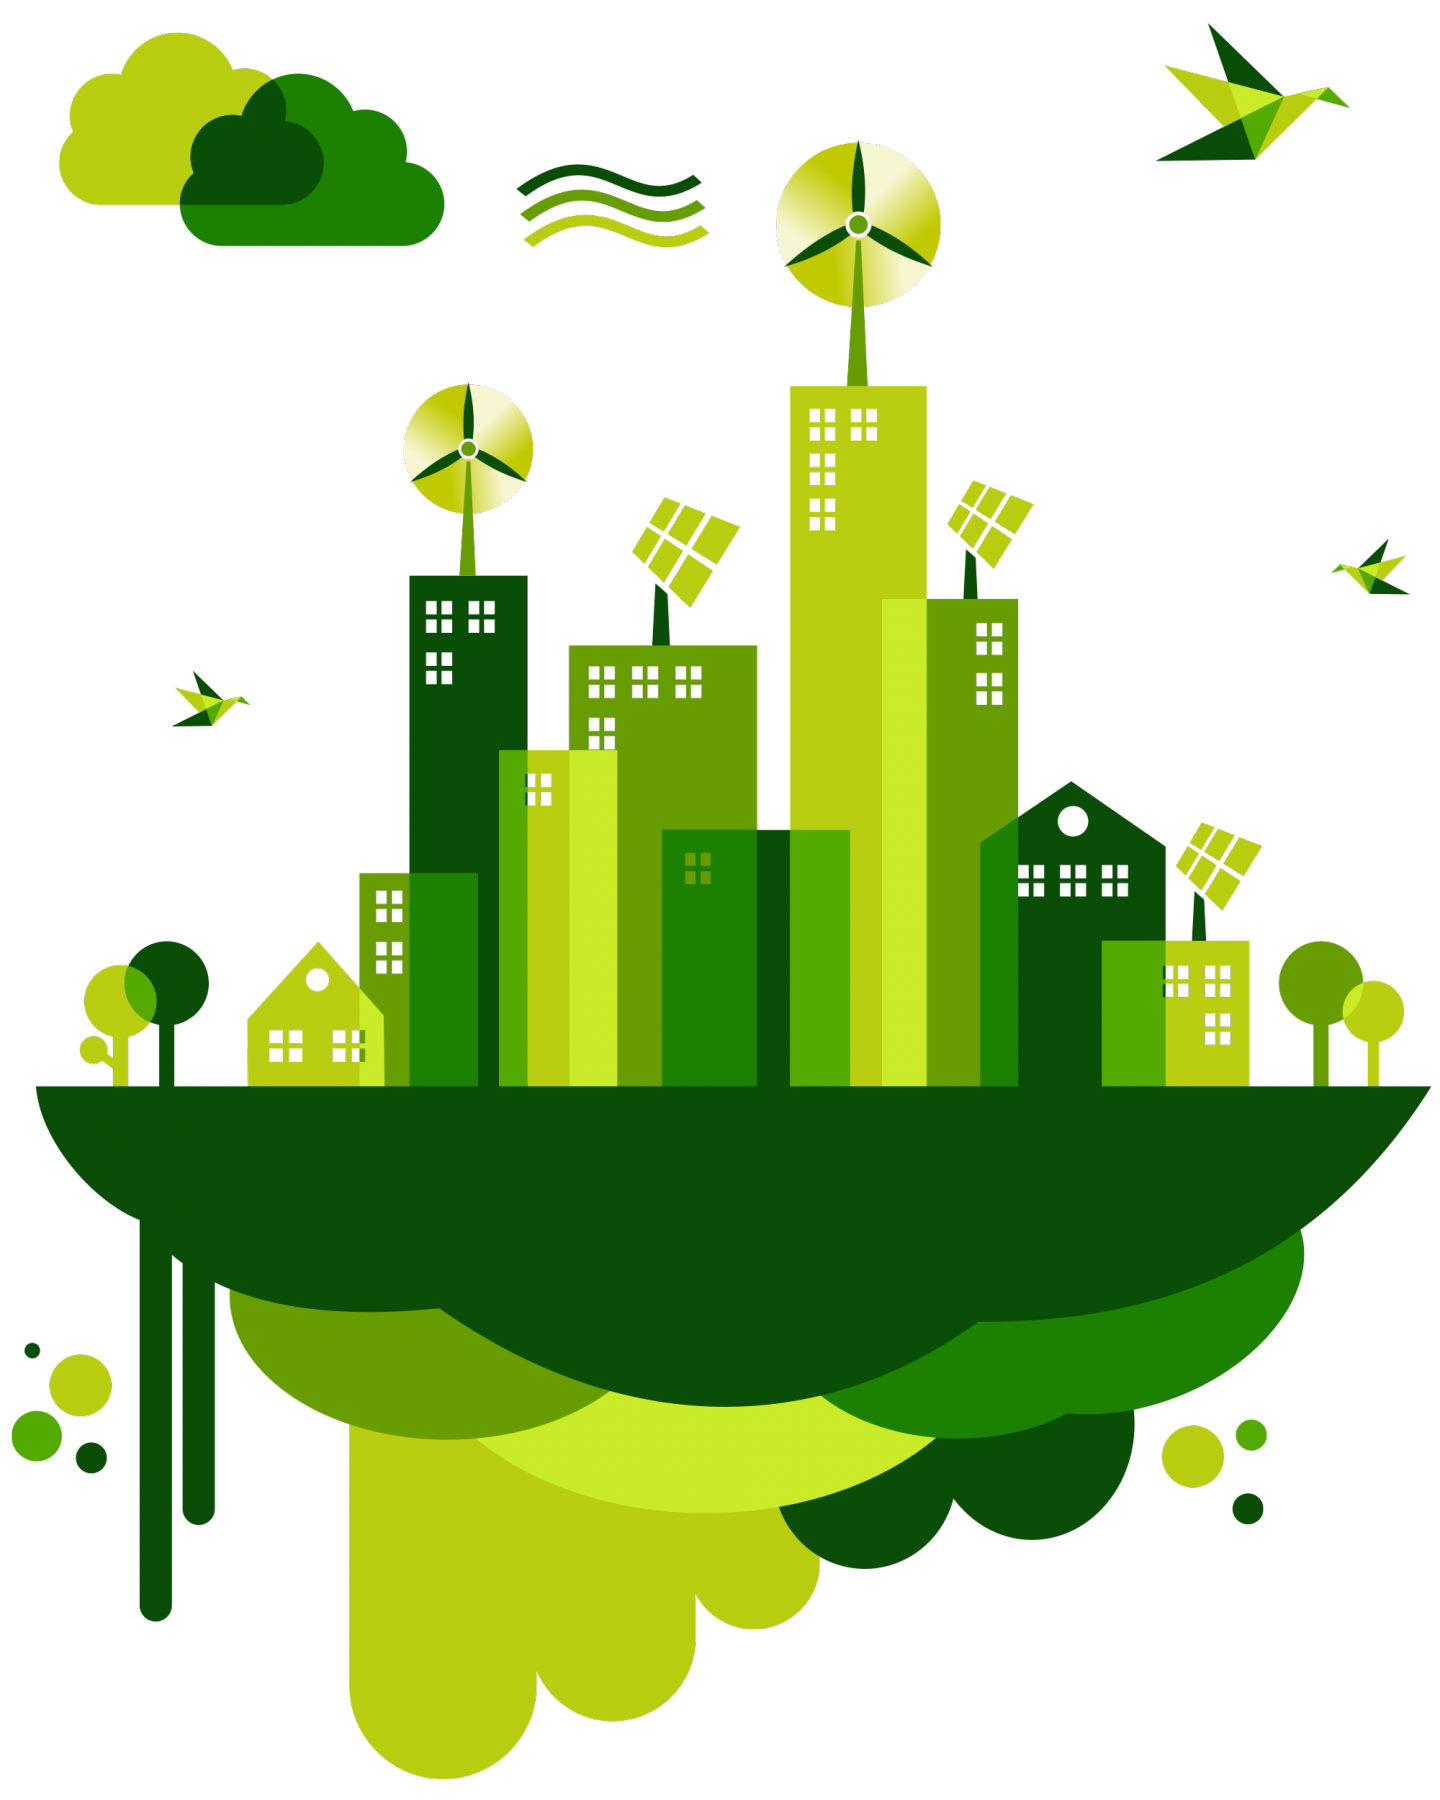 Environment clipart built. Sustainable places conference energy